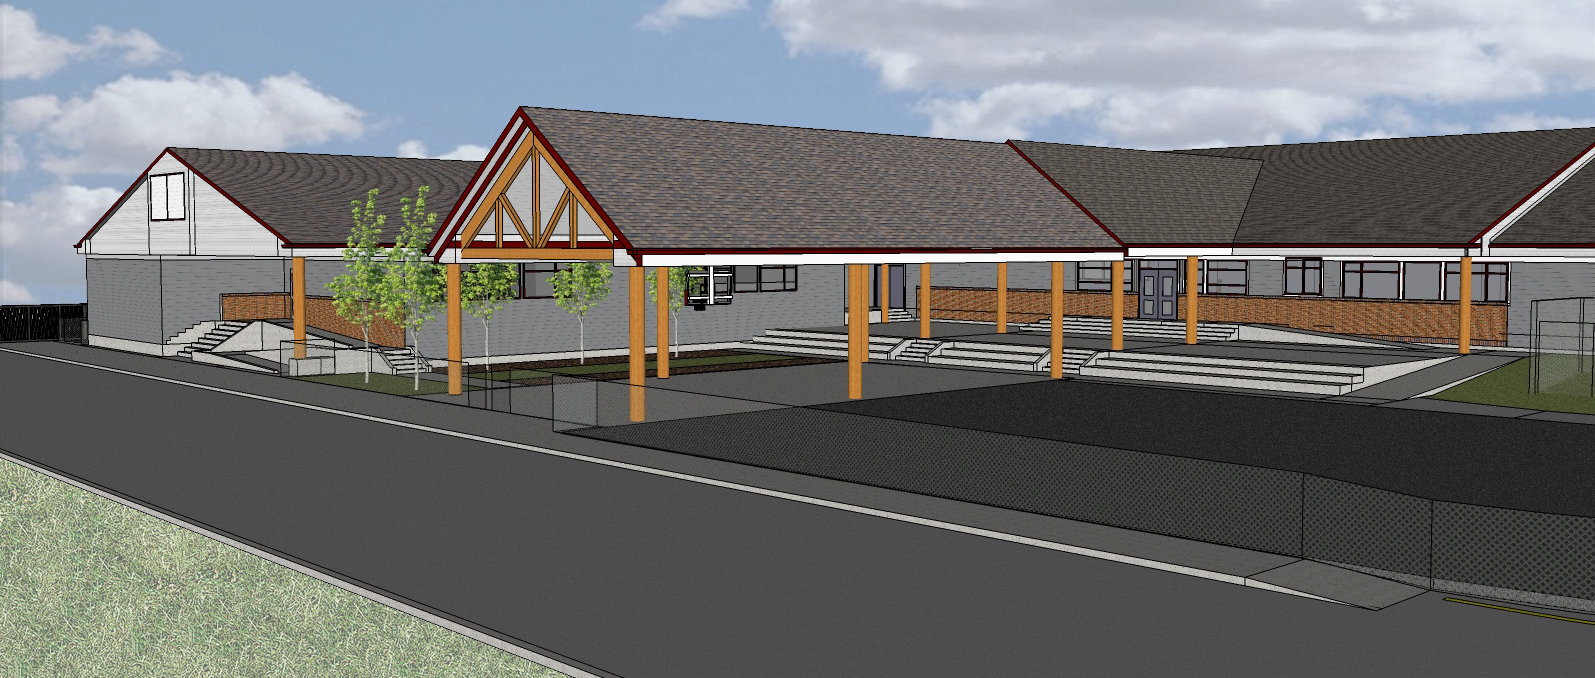 Rendering of the main entrance.